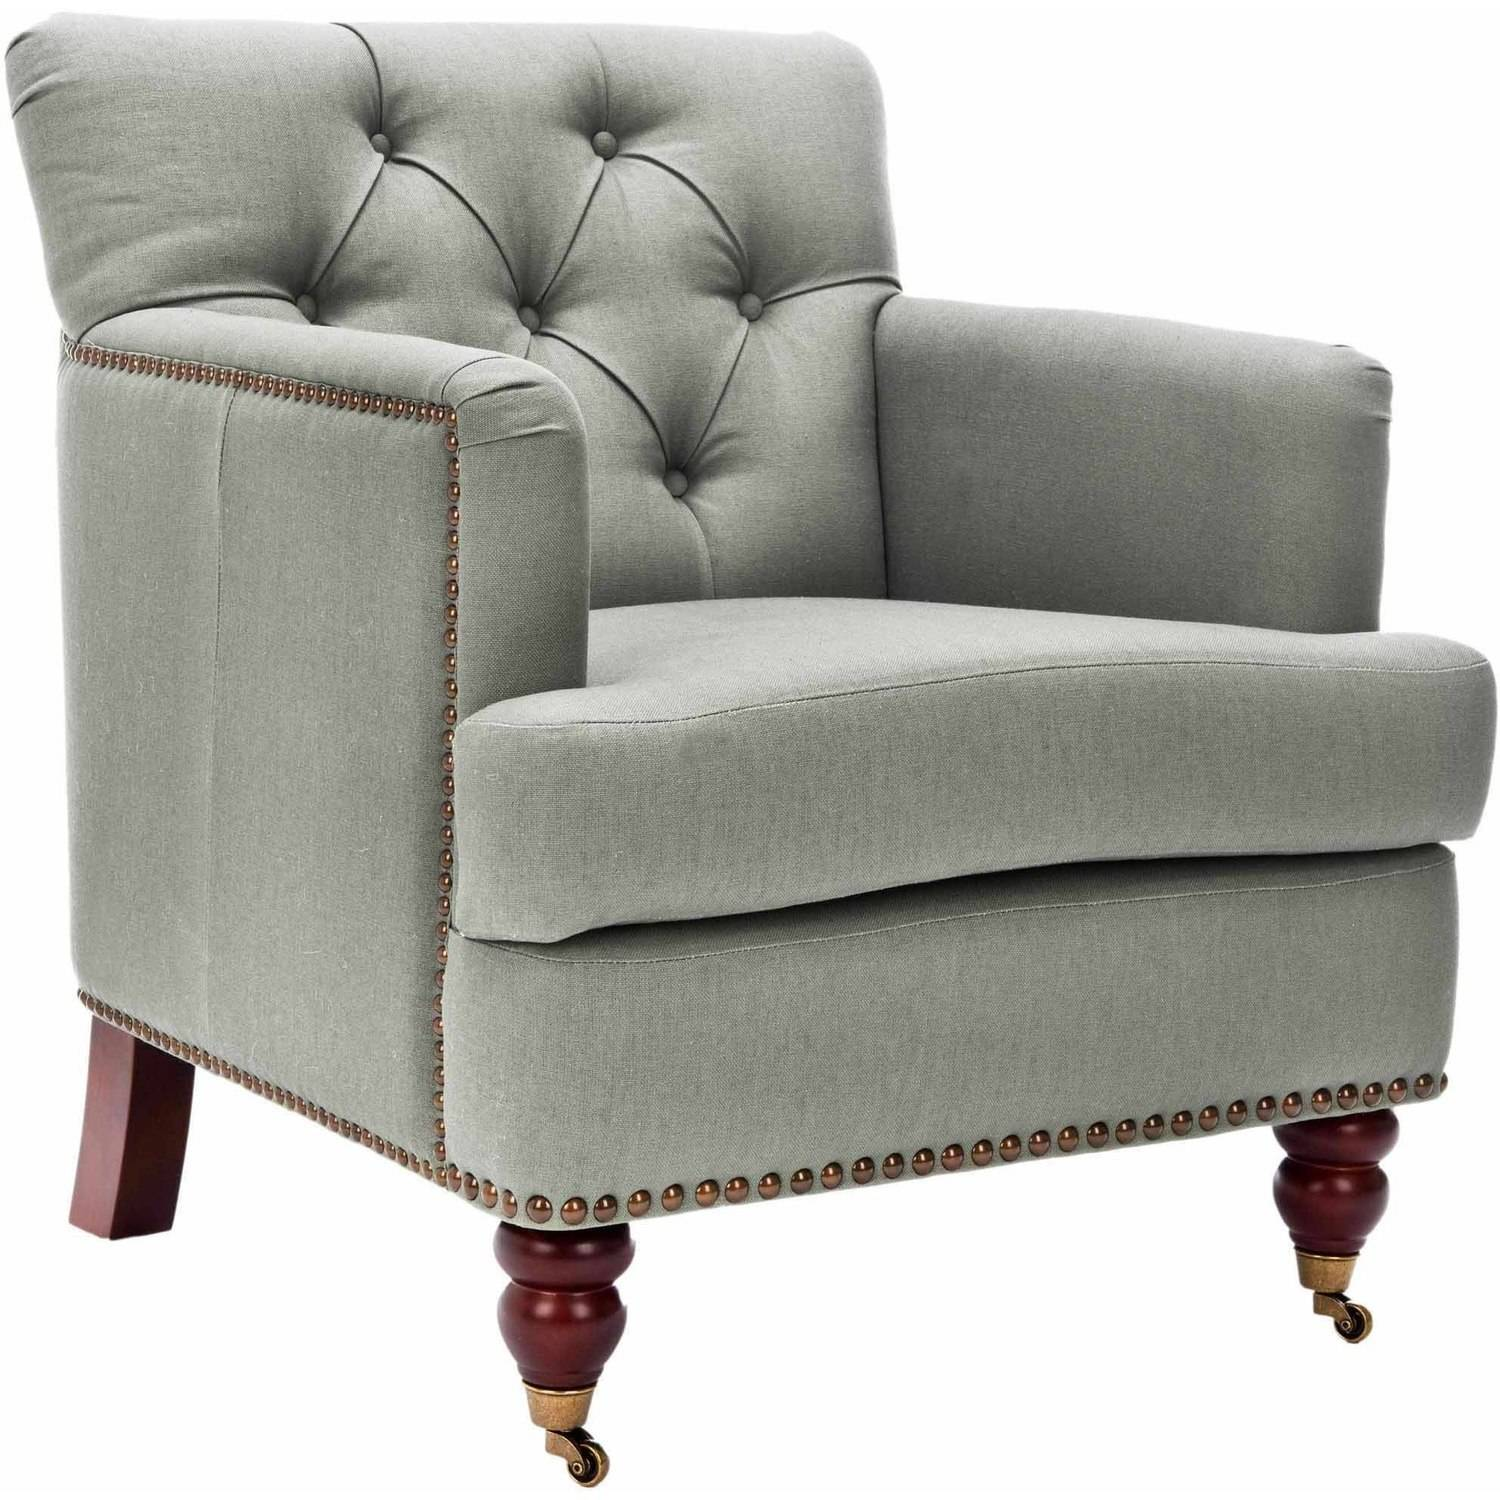 Football Sessel Safavieh Colin Tufted Club Chair